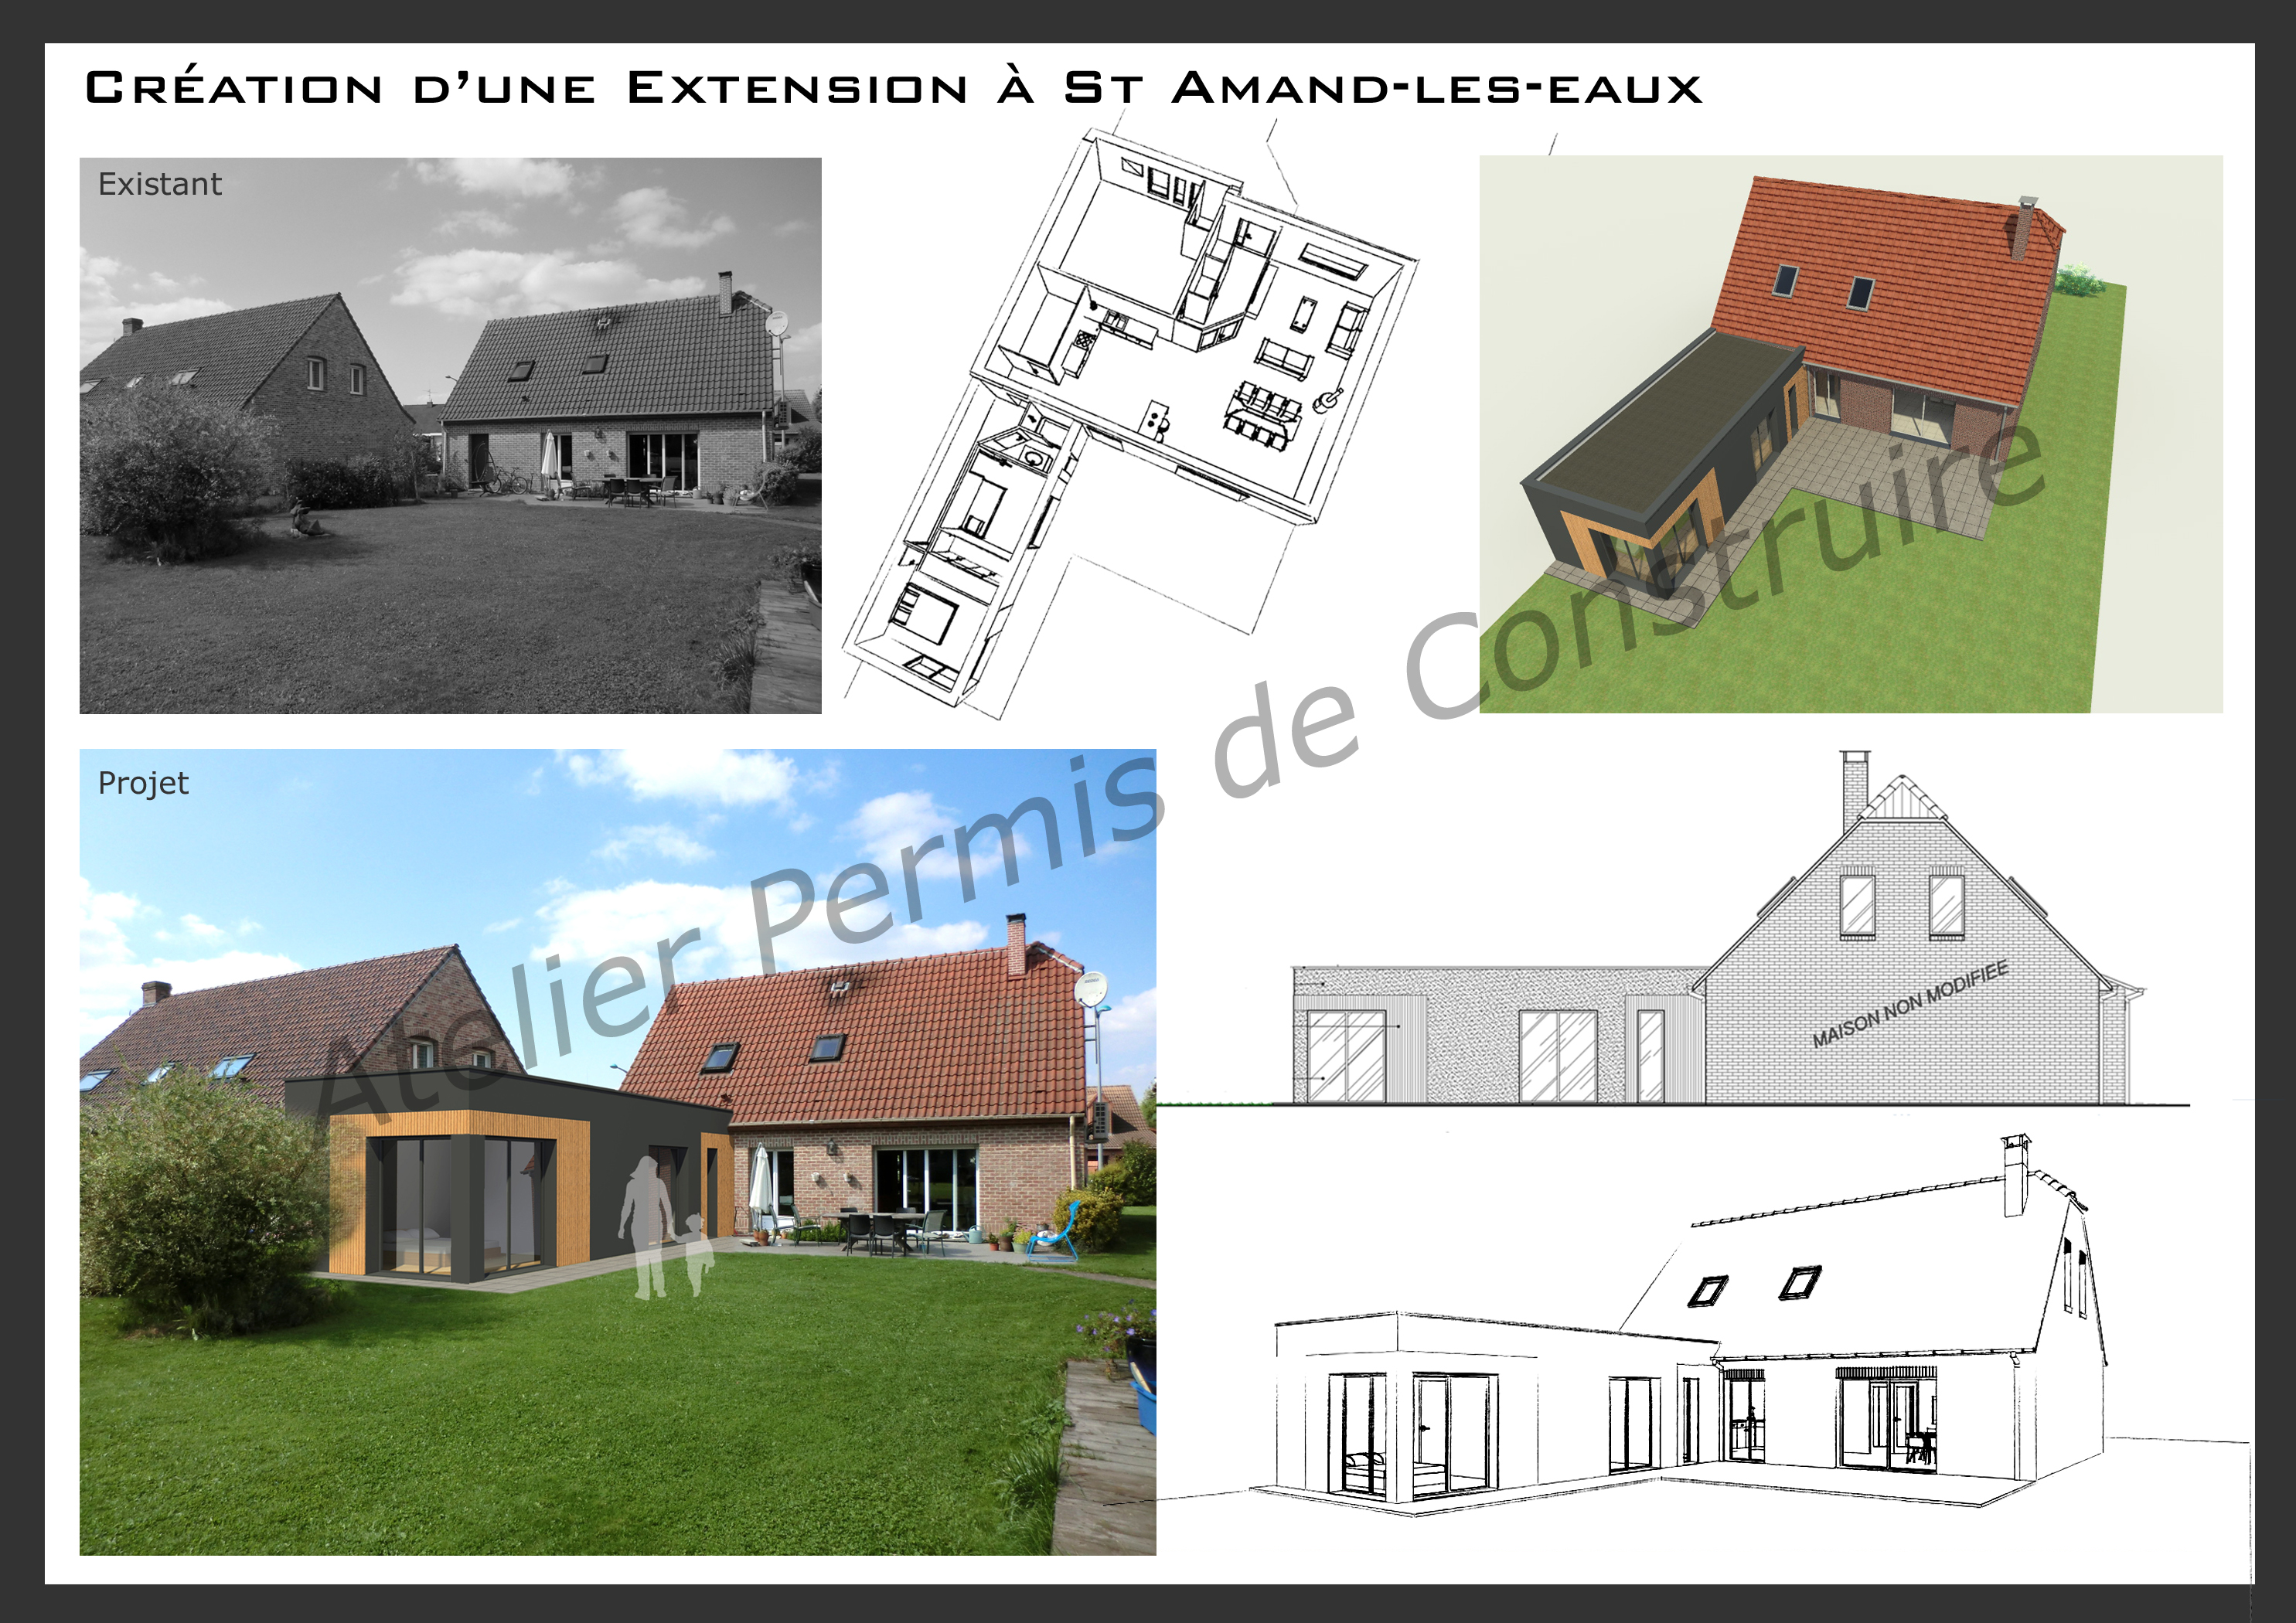 Cr ation d 39 une extension saint amand les eaux for Permis de construire extension maison